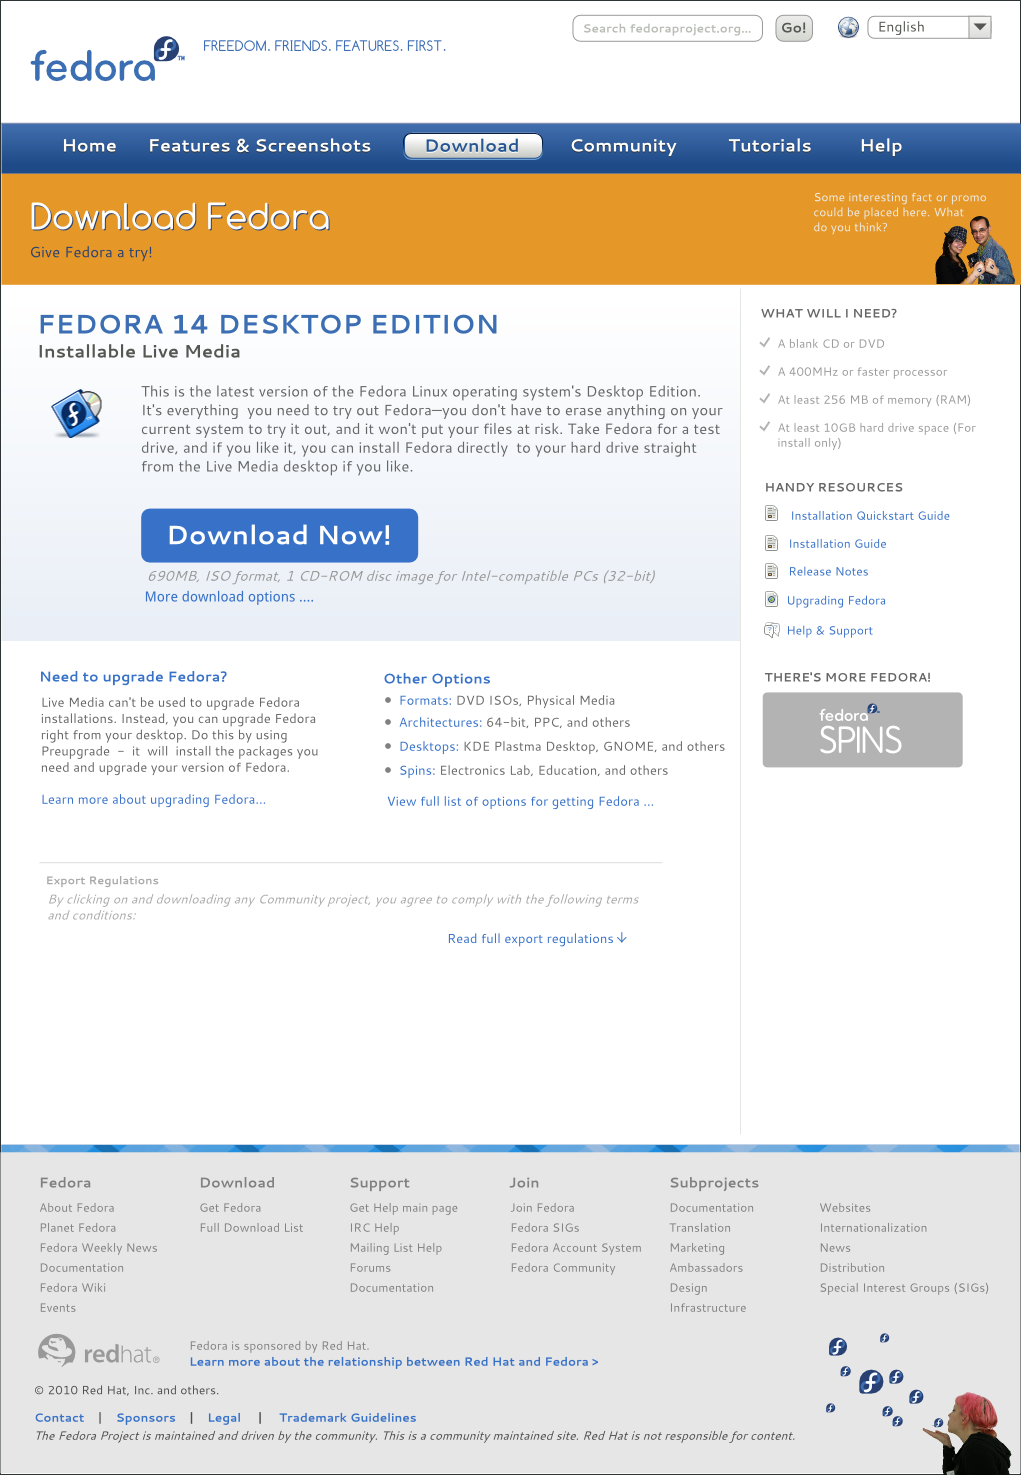 Wwwfpo-redesign-2010 4-download.png